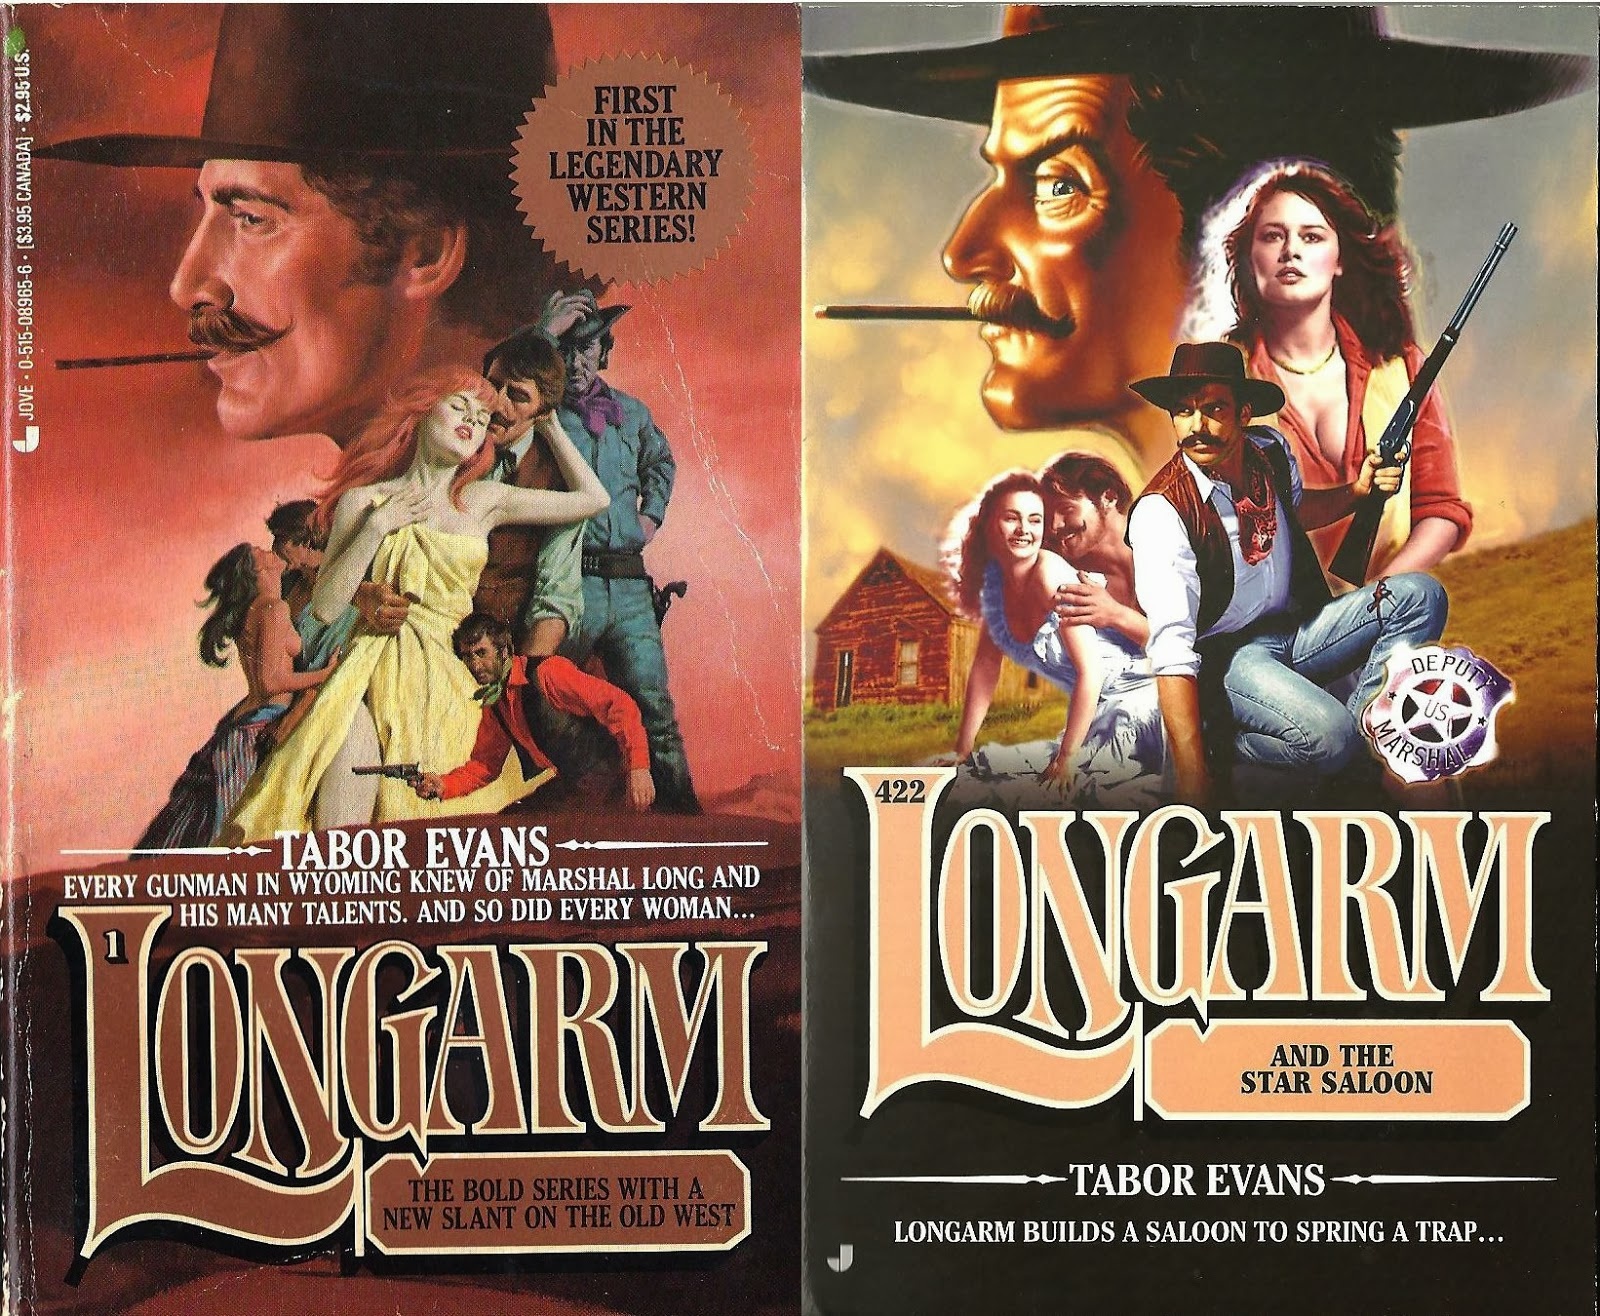 Dispatches from the last outlaw longarm 1 and longarm 422 by heres a winner that dates back to 1978 ah those were the days along with the gunsmith and slocum i do believe longarm is the longest running western fandeluxe Gallery